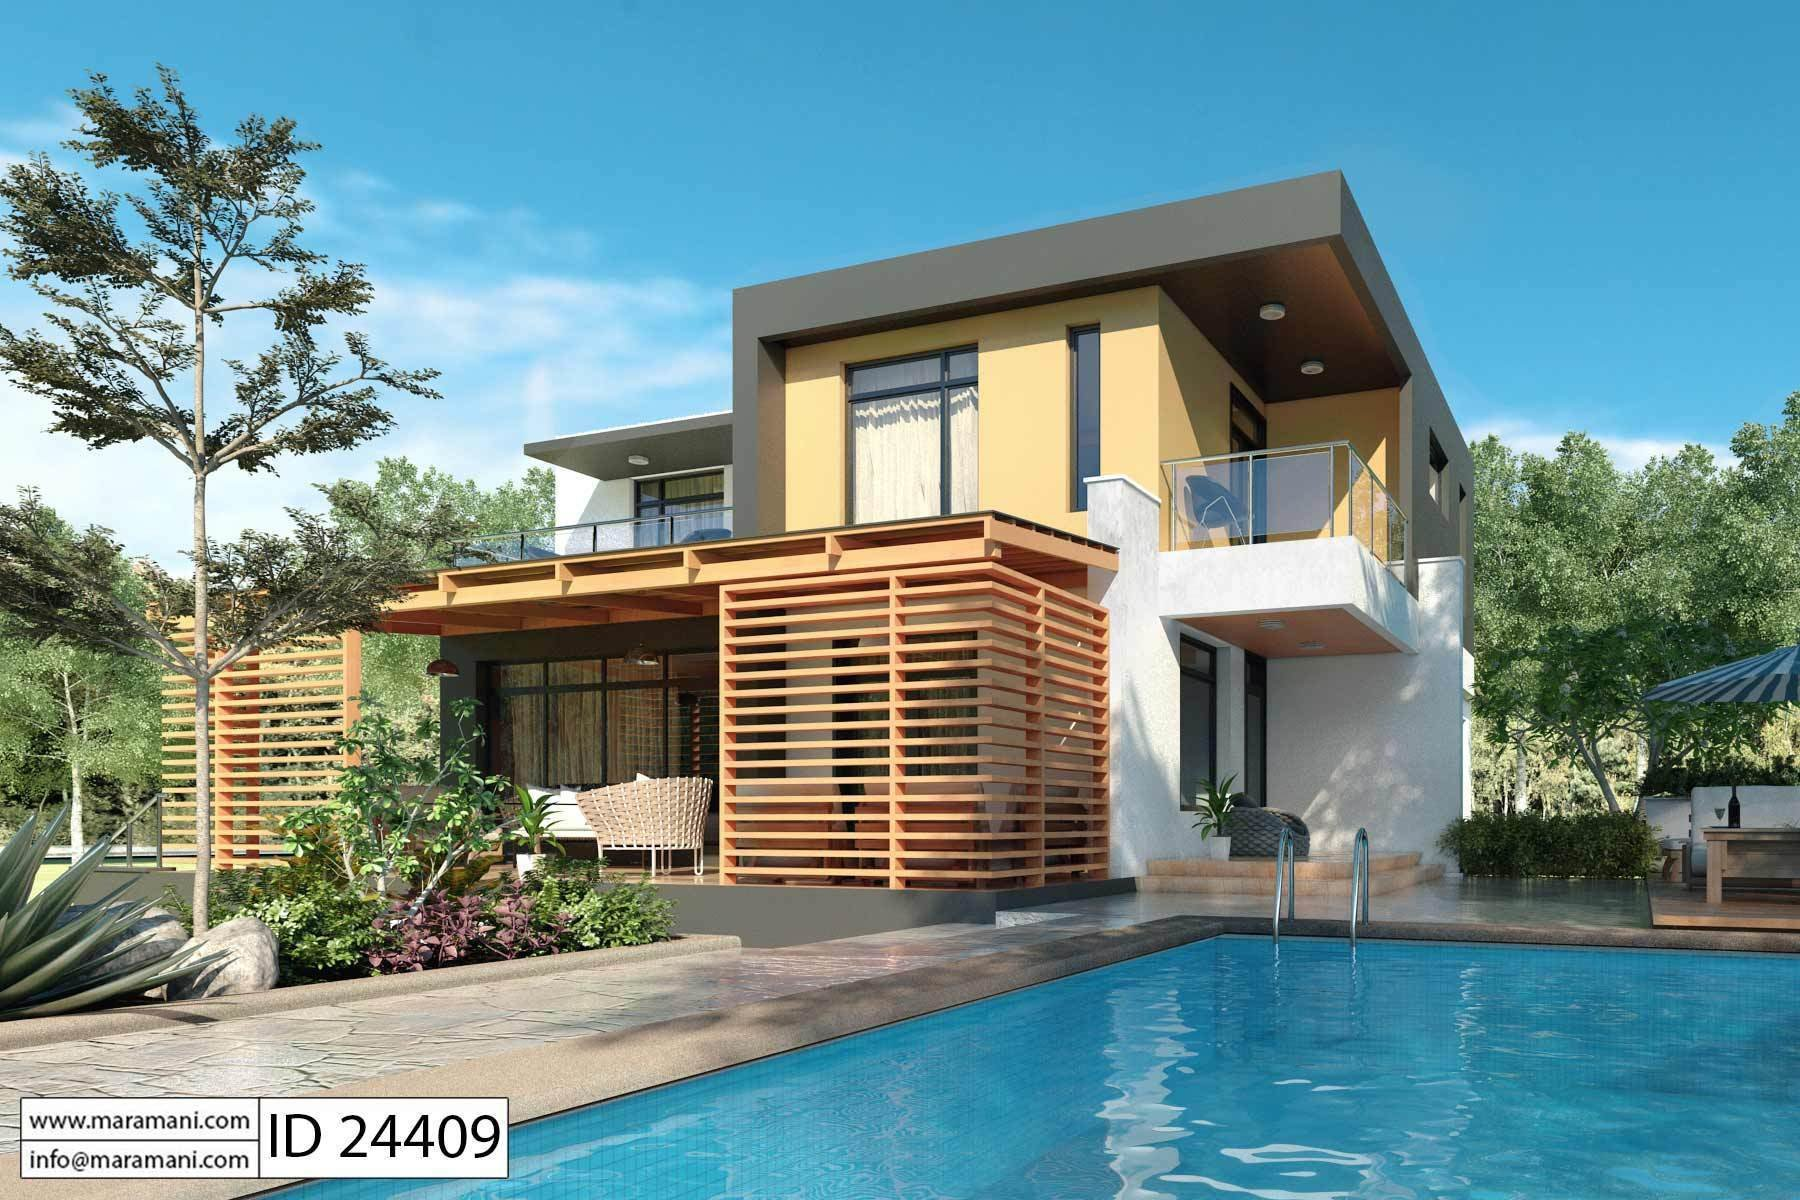 Best Modern 4 Bedroom House Plan Id 24409 Designs By Maramani With Pictures